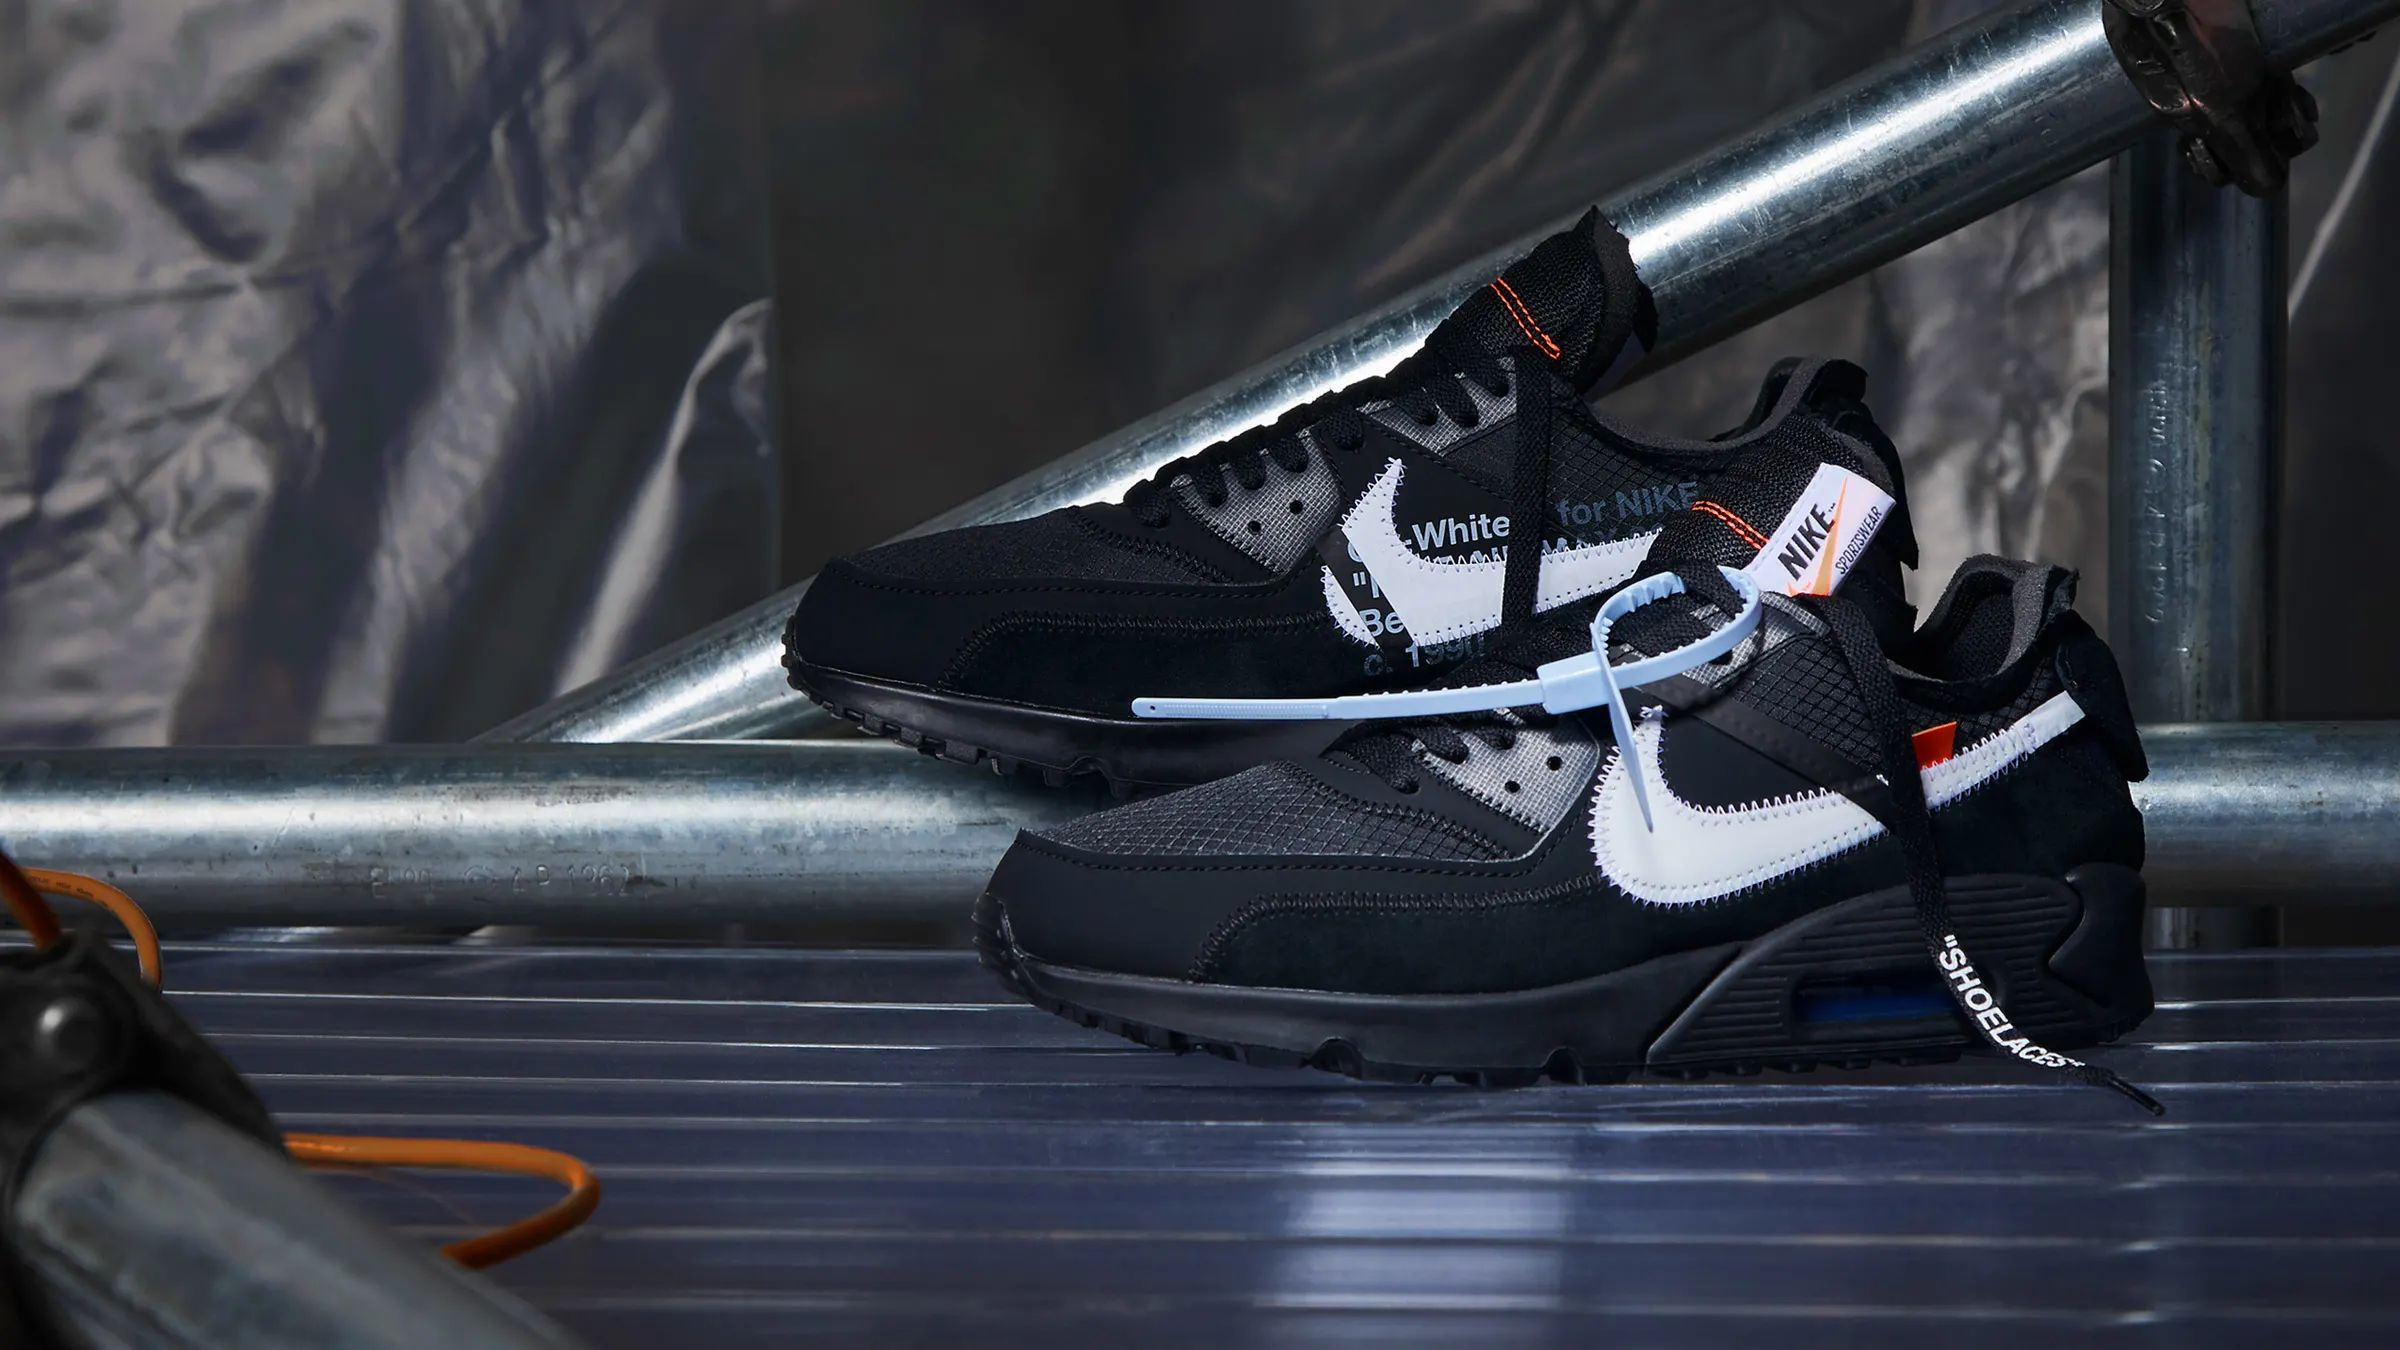 off-white-nike-air-max-90-2018-black-release-20190207